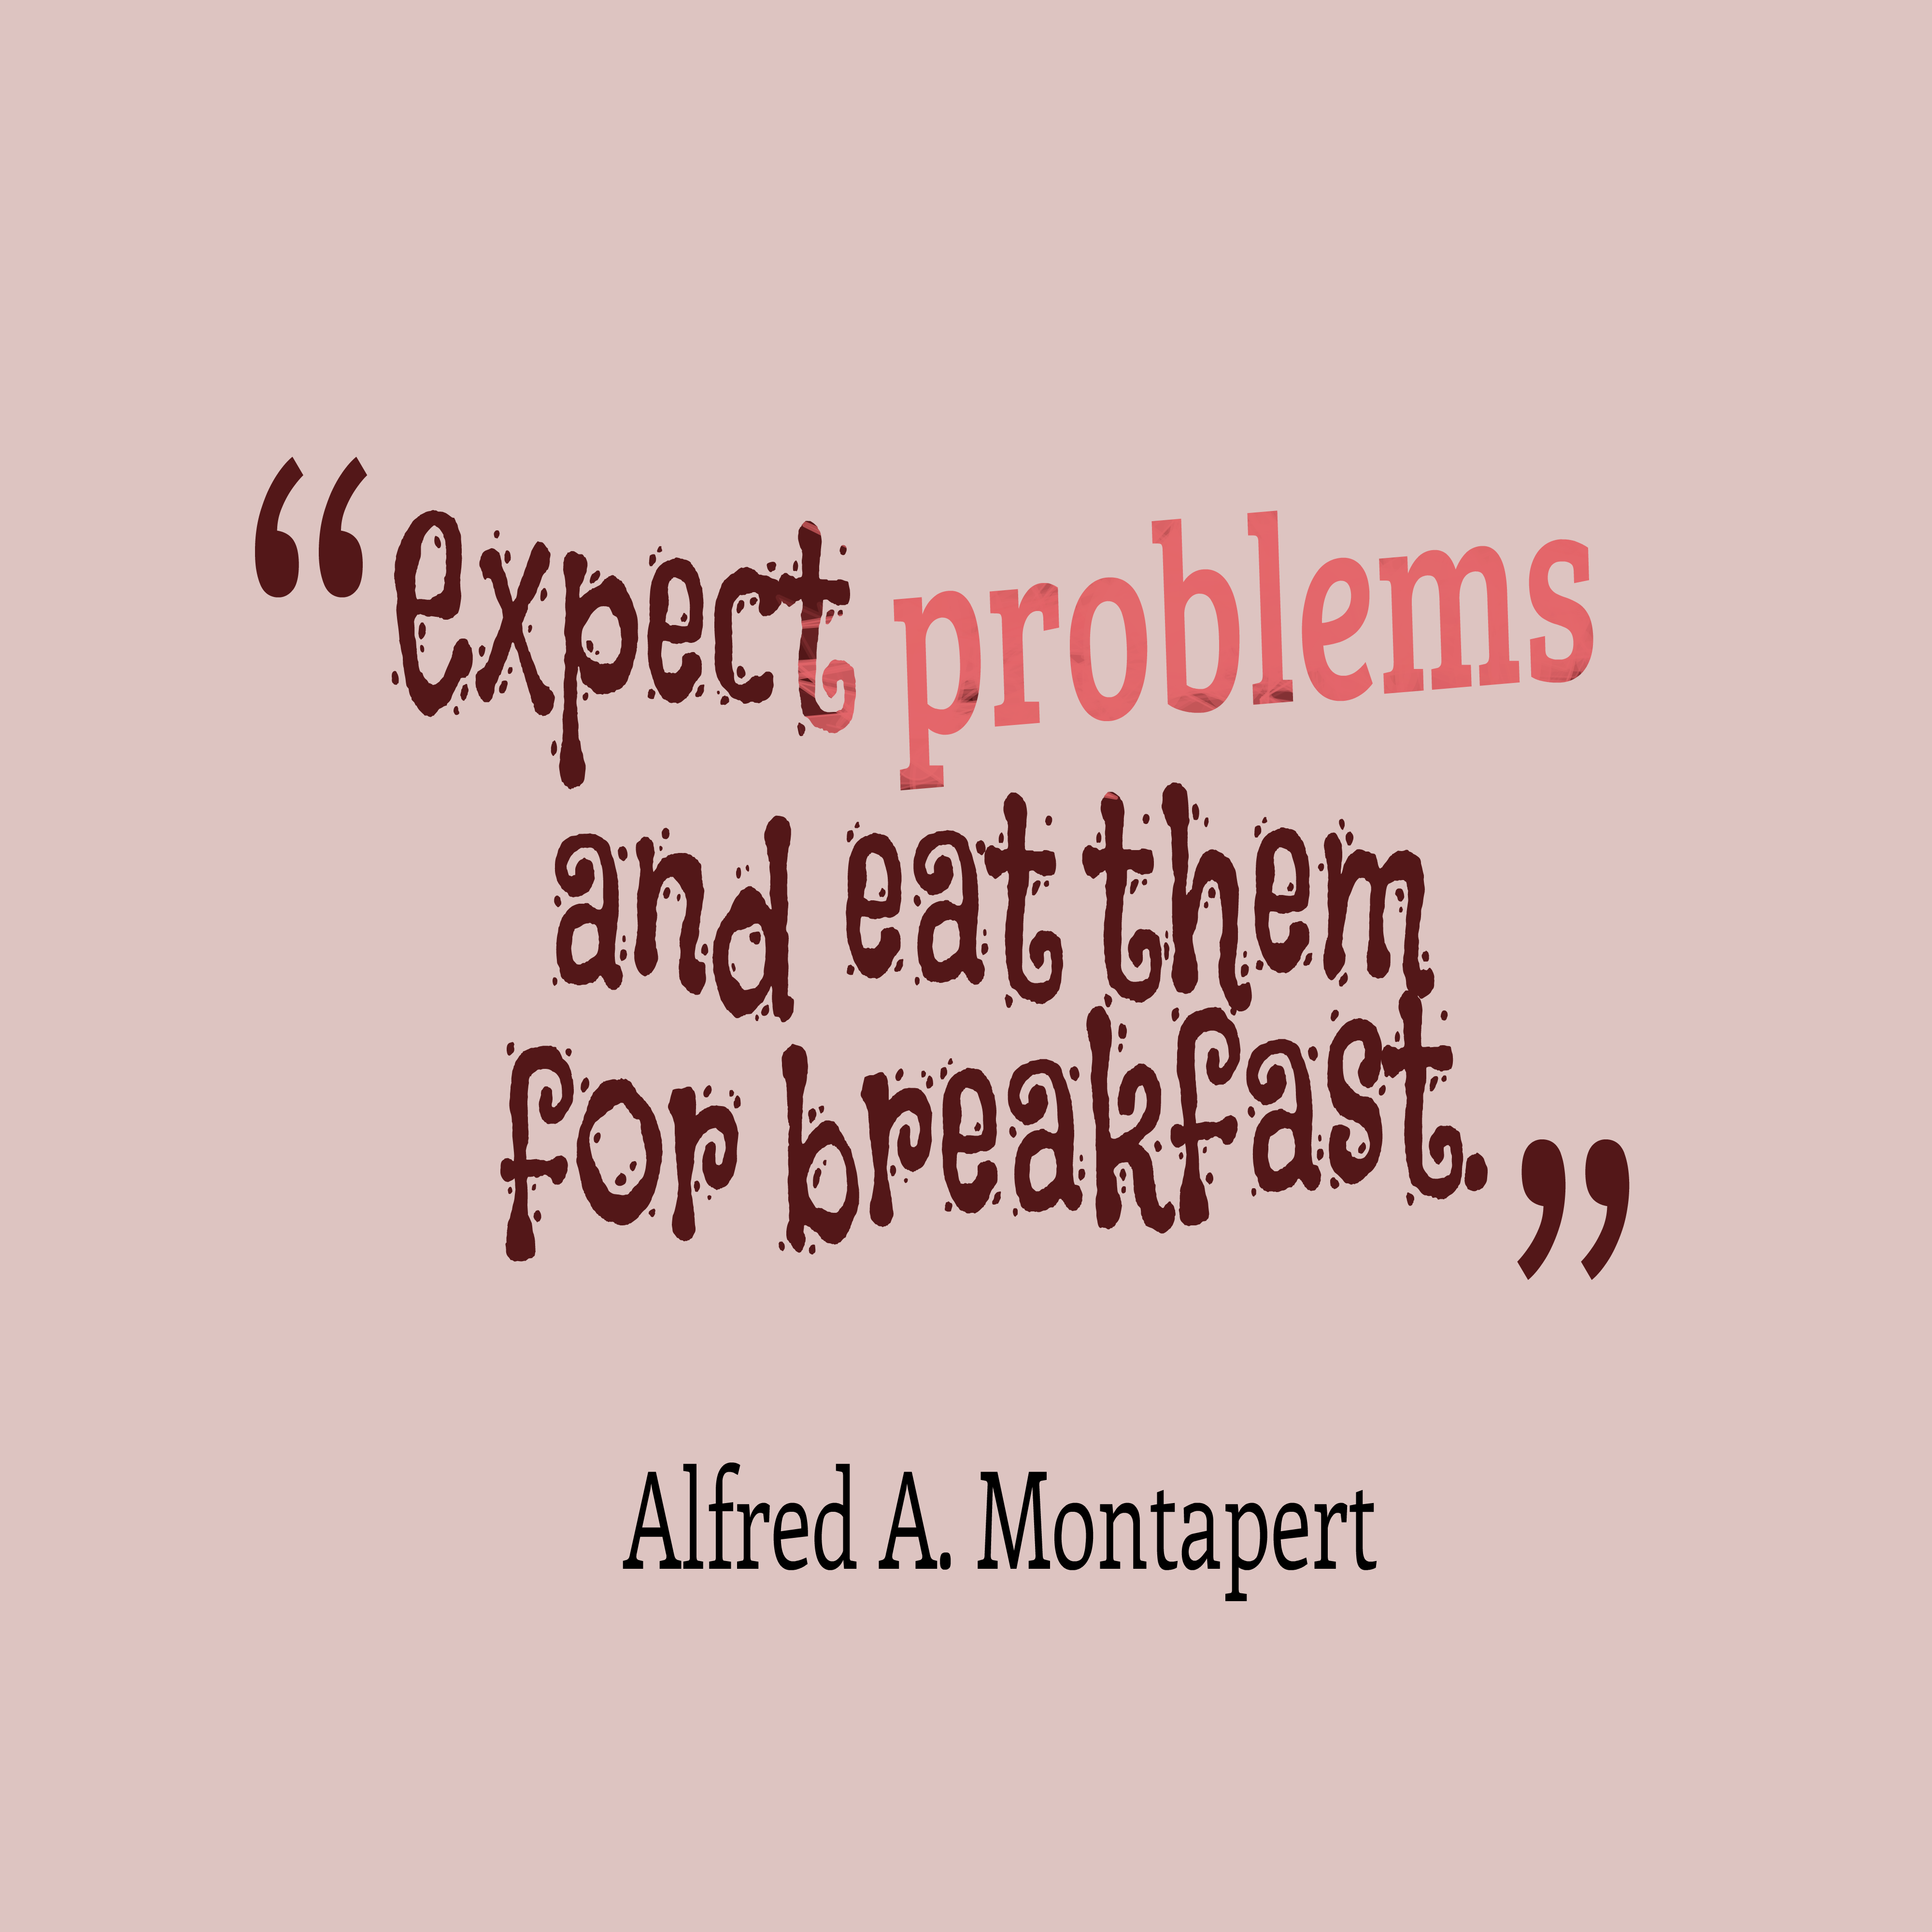 Quote On Picture Maker: Download High Resolution Quotes Picture Maker From Alfred